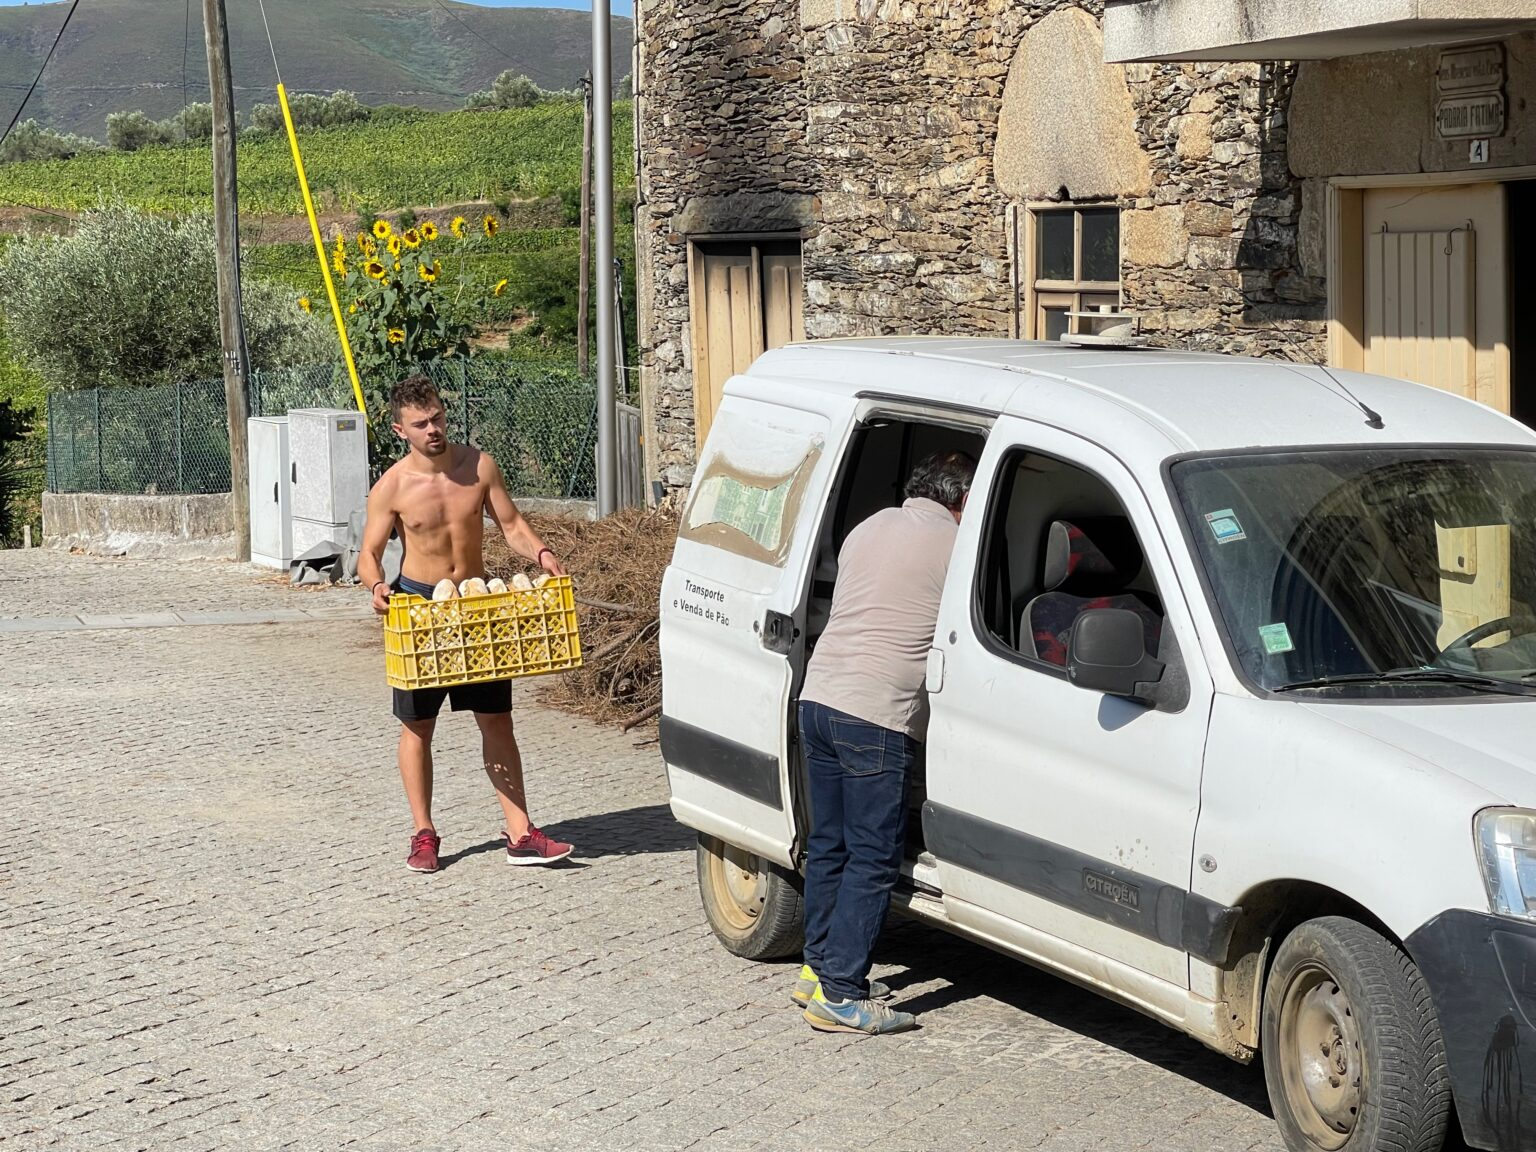 The baker's beefy assistant carries the day's loaves to the delivery van in Provesende, Portugal.